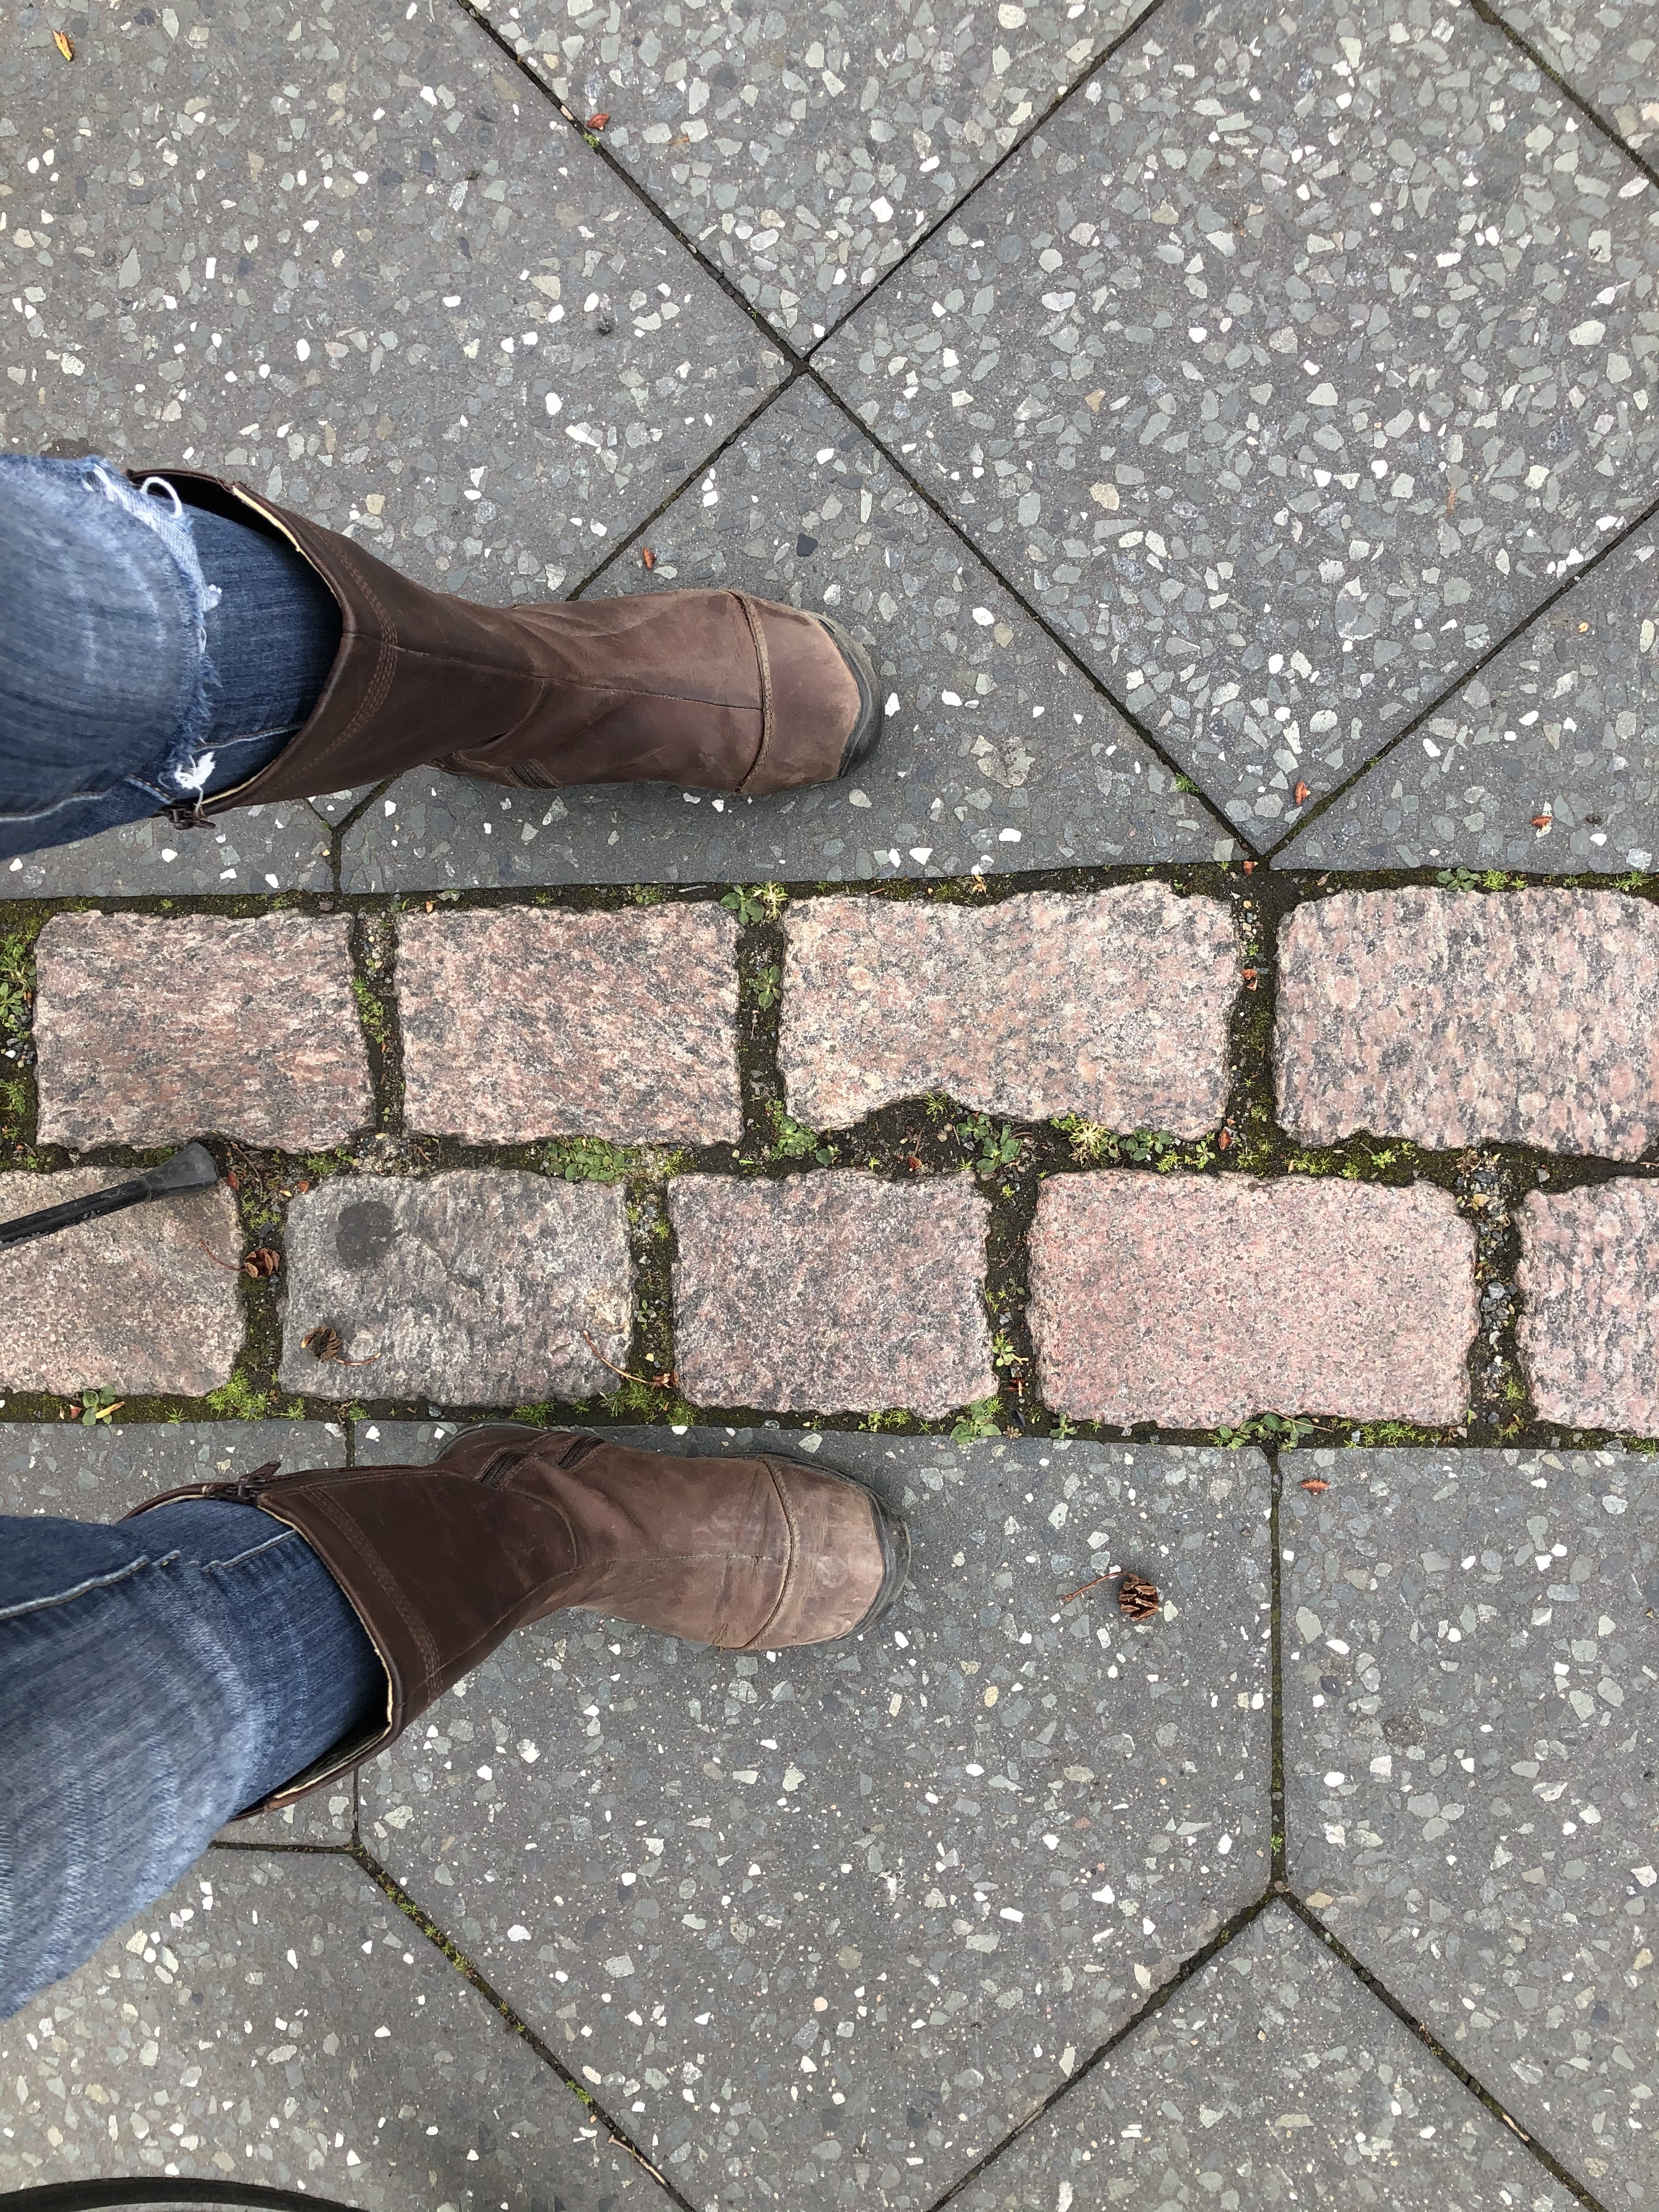 Today, we can stand peacefully with one foot in the former East Berlin and one in the former West Berlin. This wall has fallen. What other walls need to be brought down?